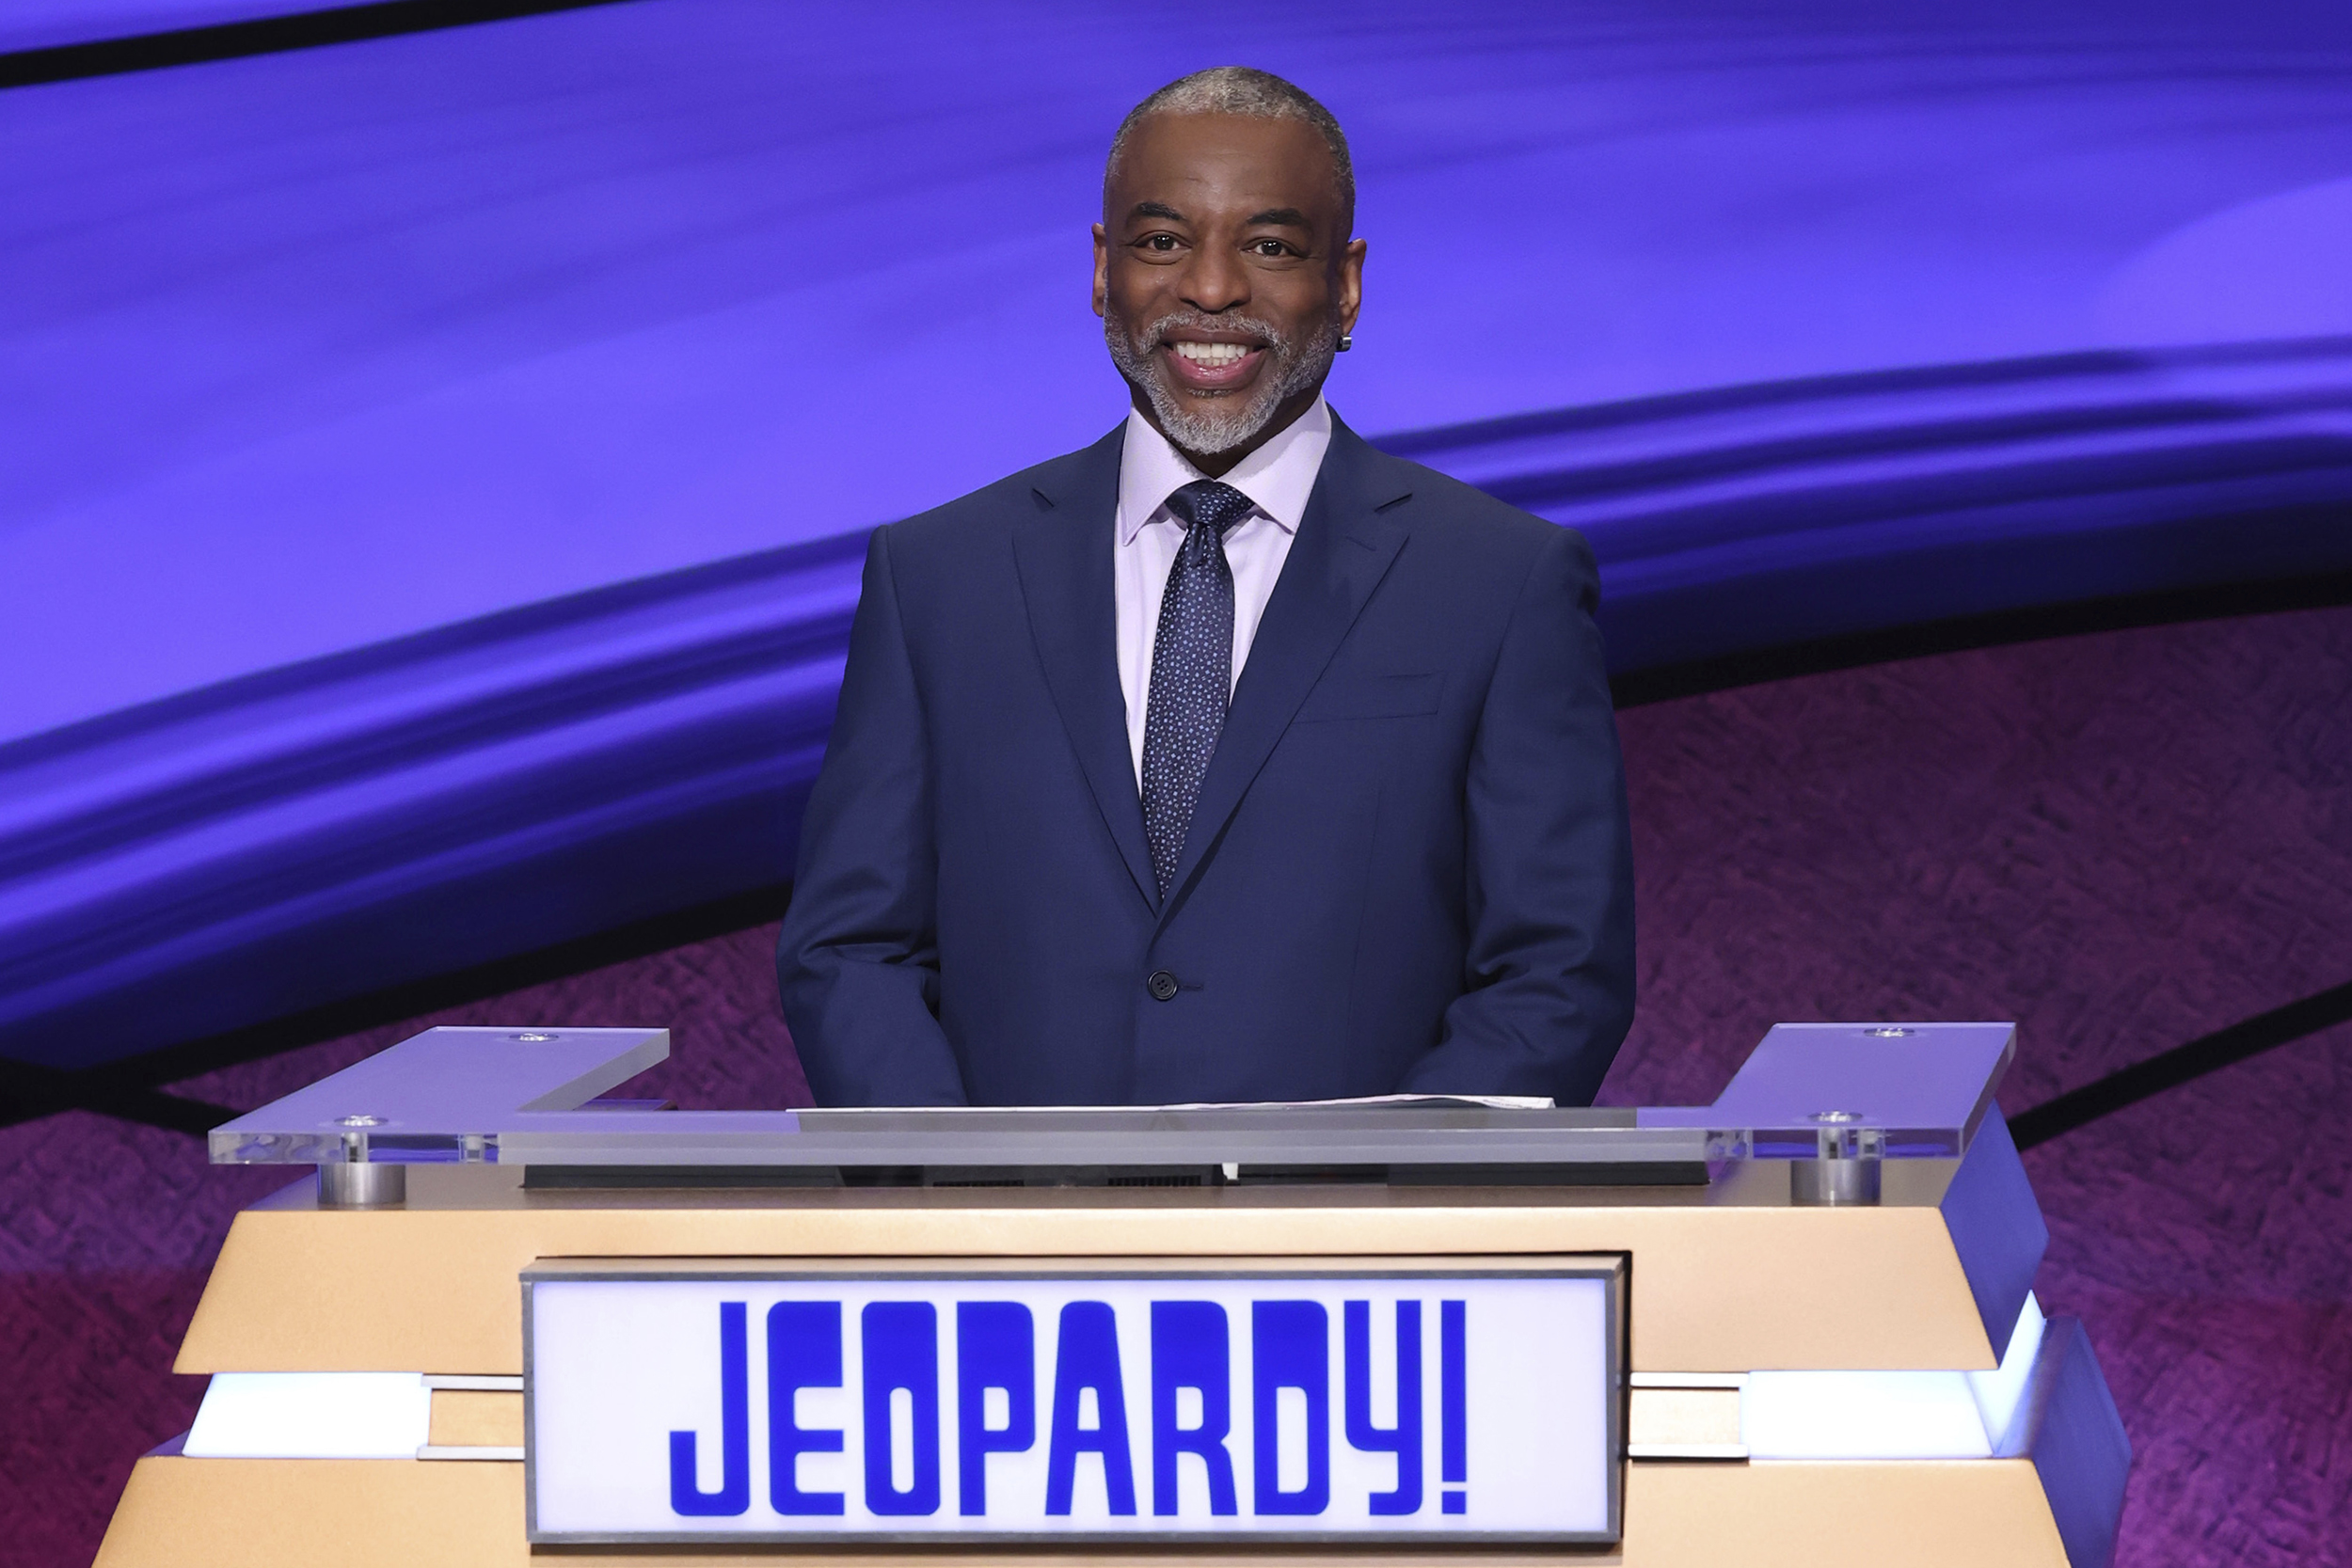 LeVar Burton guest hosts 'Jeopardy!' and fans are rallying to boost his ratings